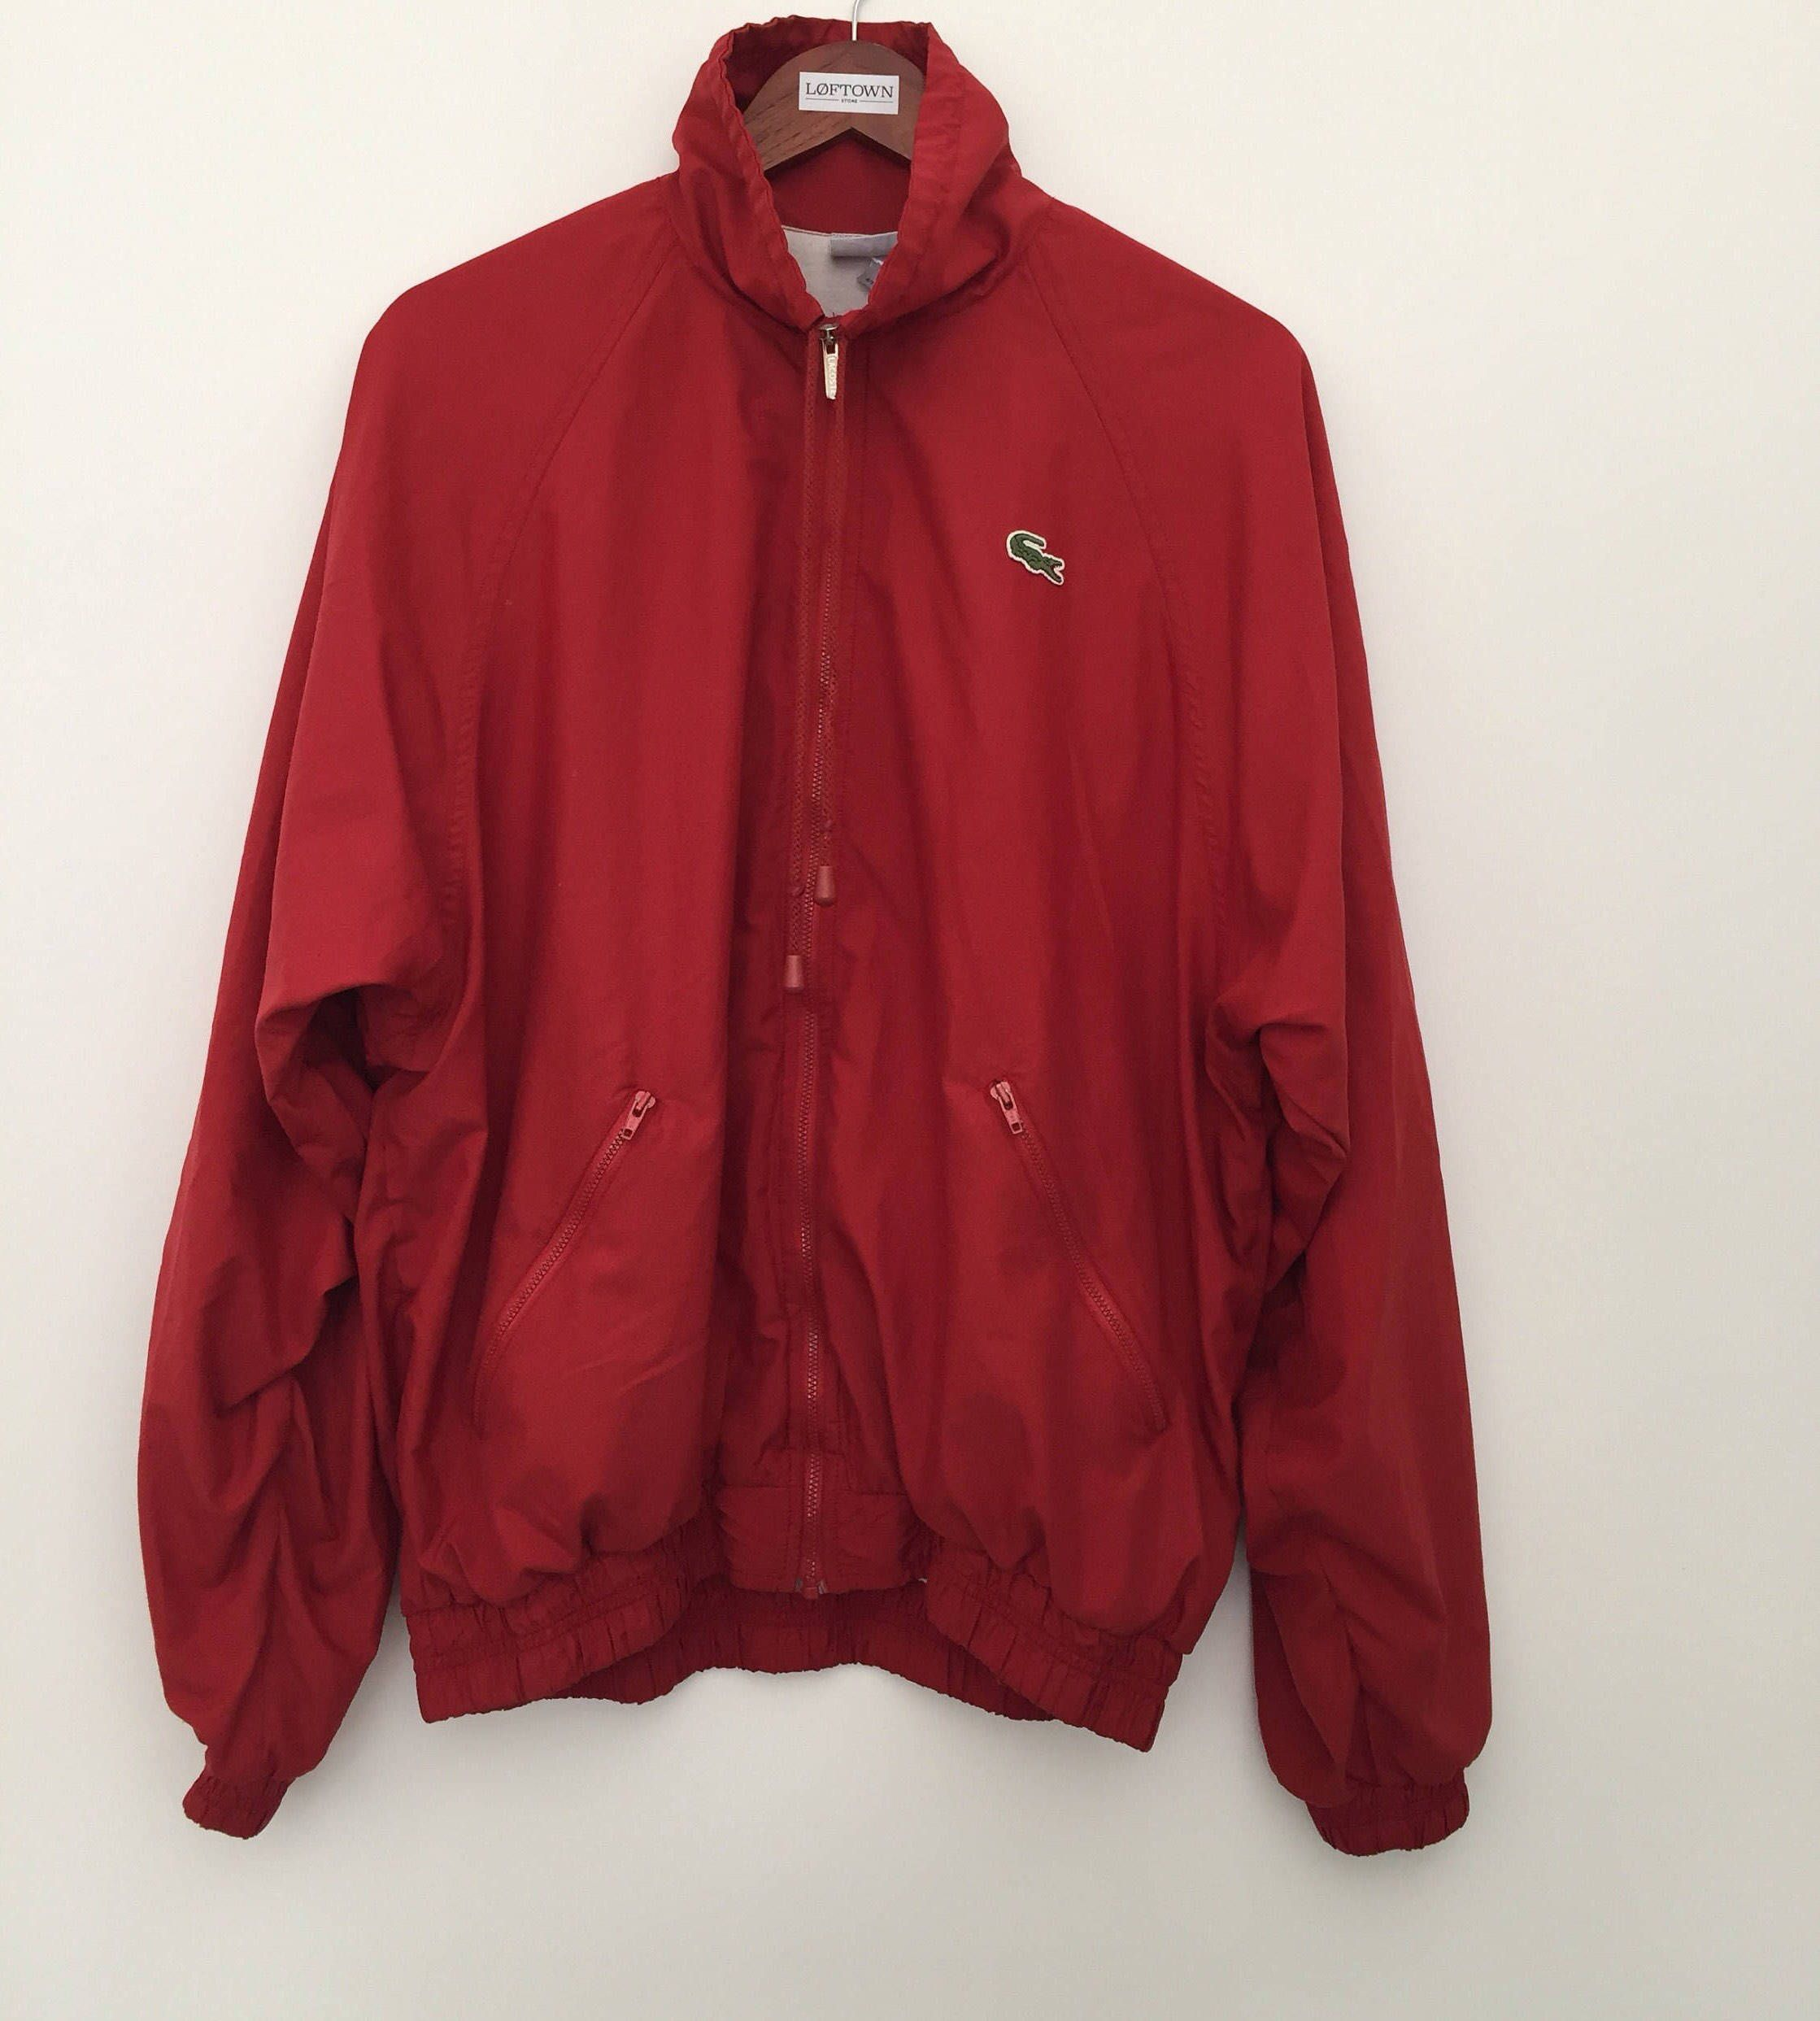 8720d22f0f2 Vintage Lacoste / Lacoste jacket / Lacoste / vintage windbreaker / 90s  windbreaker / red windbreaker / 90s jacket / made in France / by LOFTOWN on  Etsy